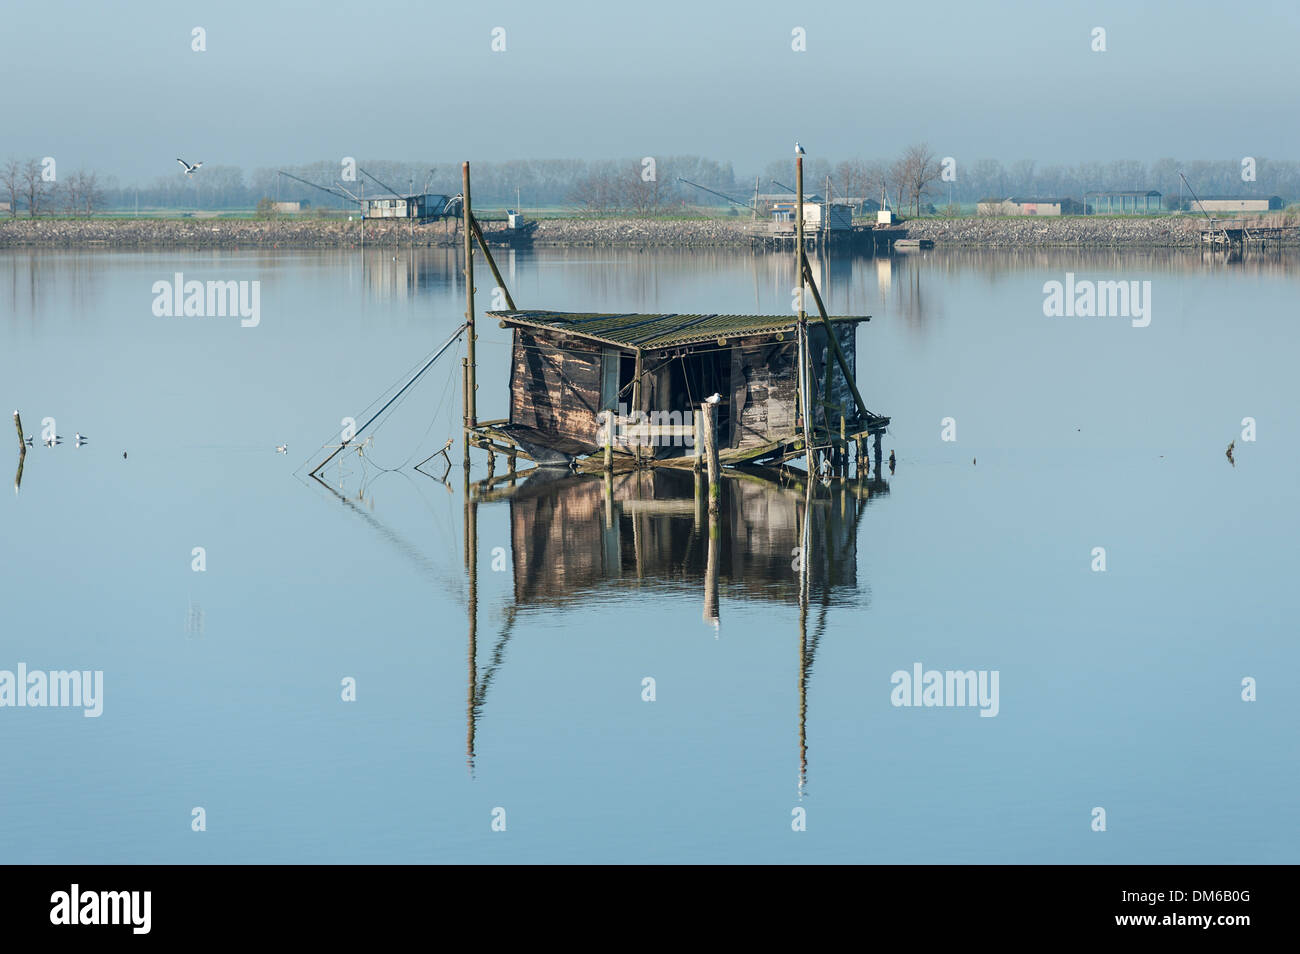 Dilapidated fishing hut in a lagoon, with reflections, Po River Delta, Comacchio, Emilia-Romagna, Italy - Stock Image